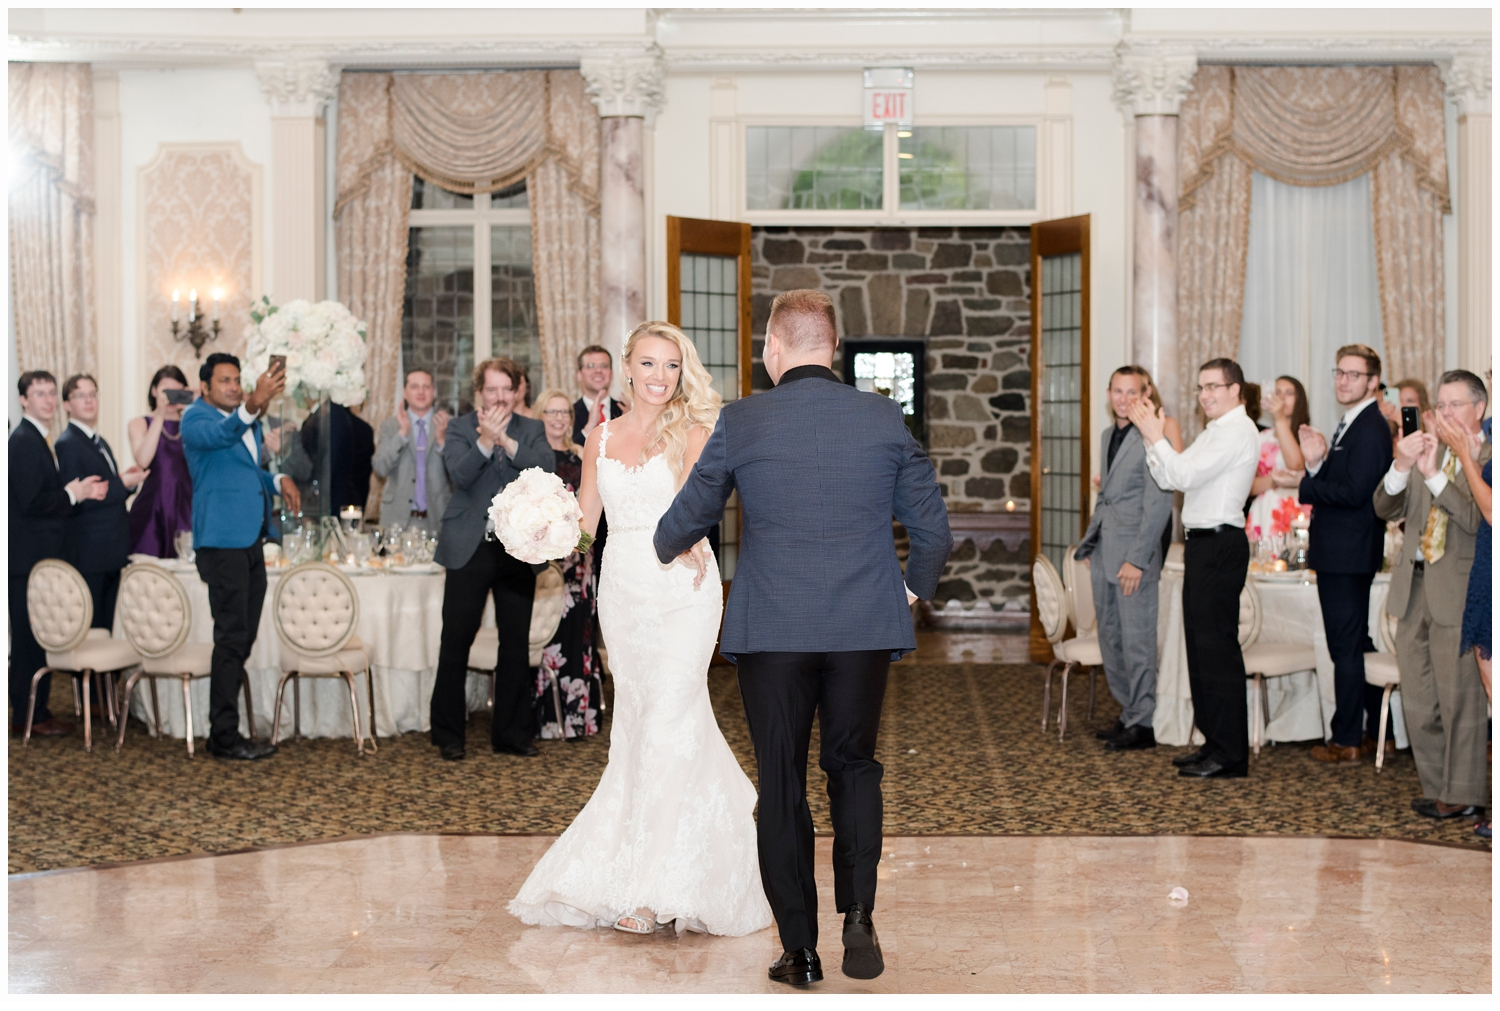 bride and groom first dance at wedding